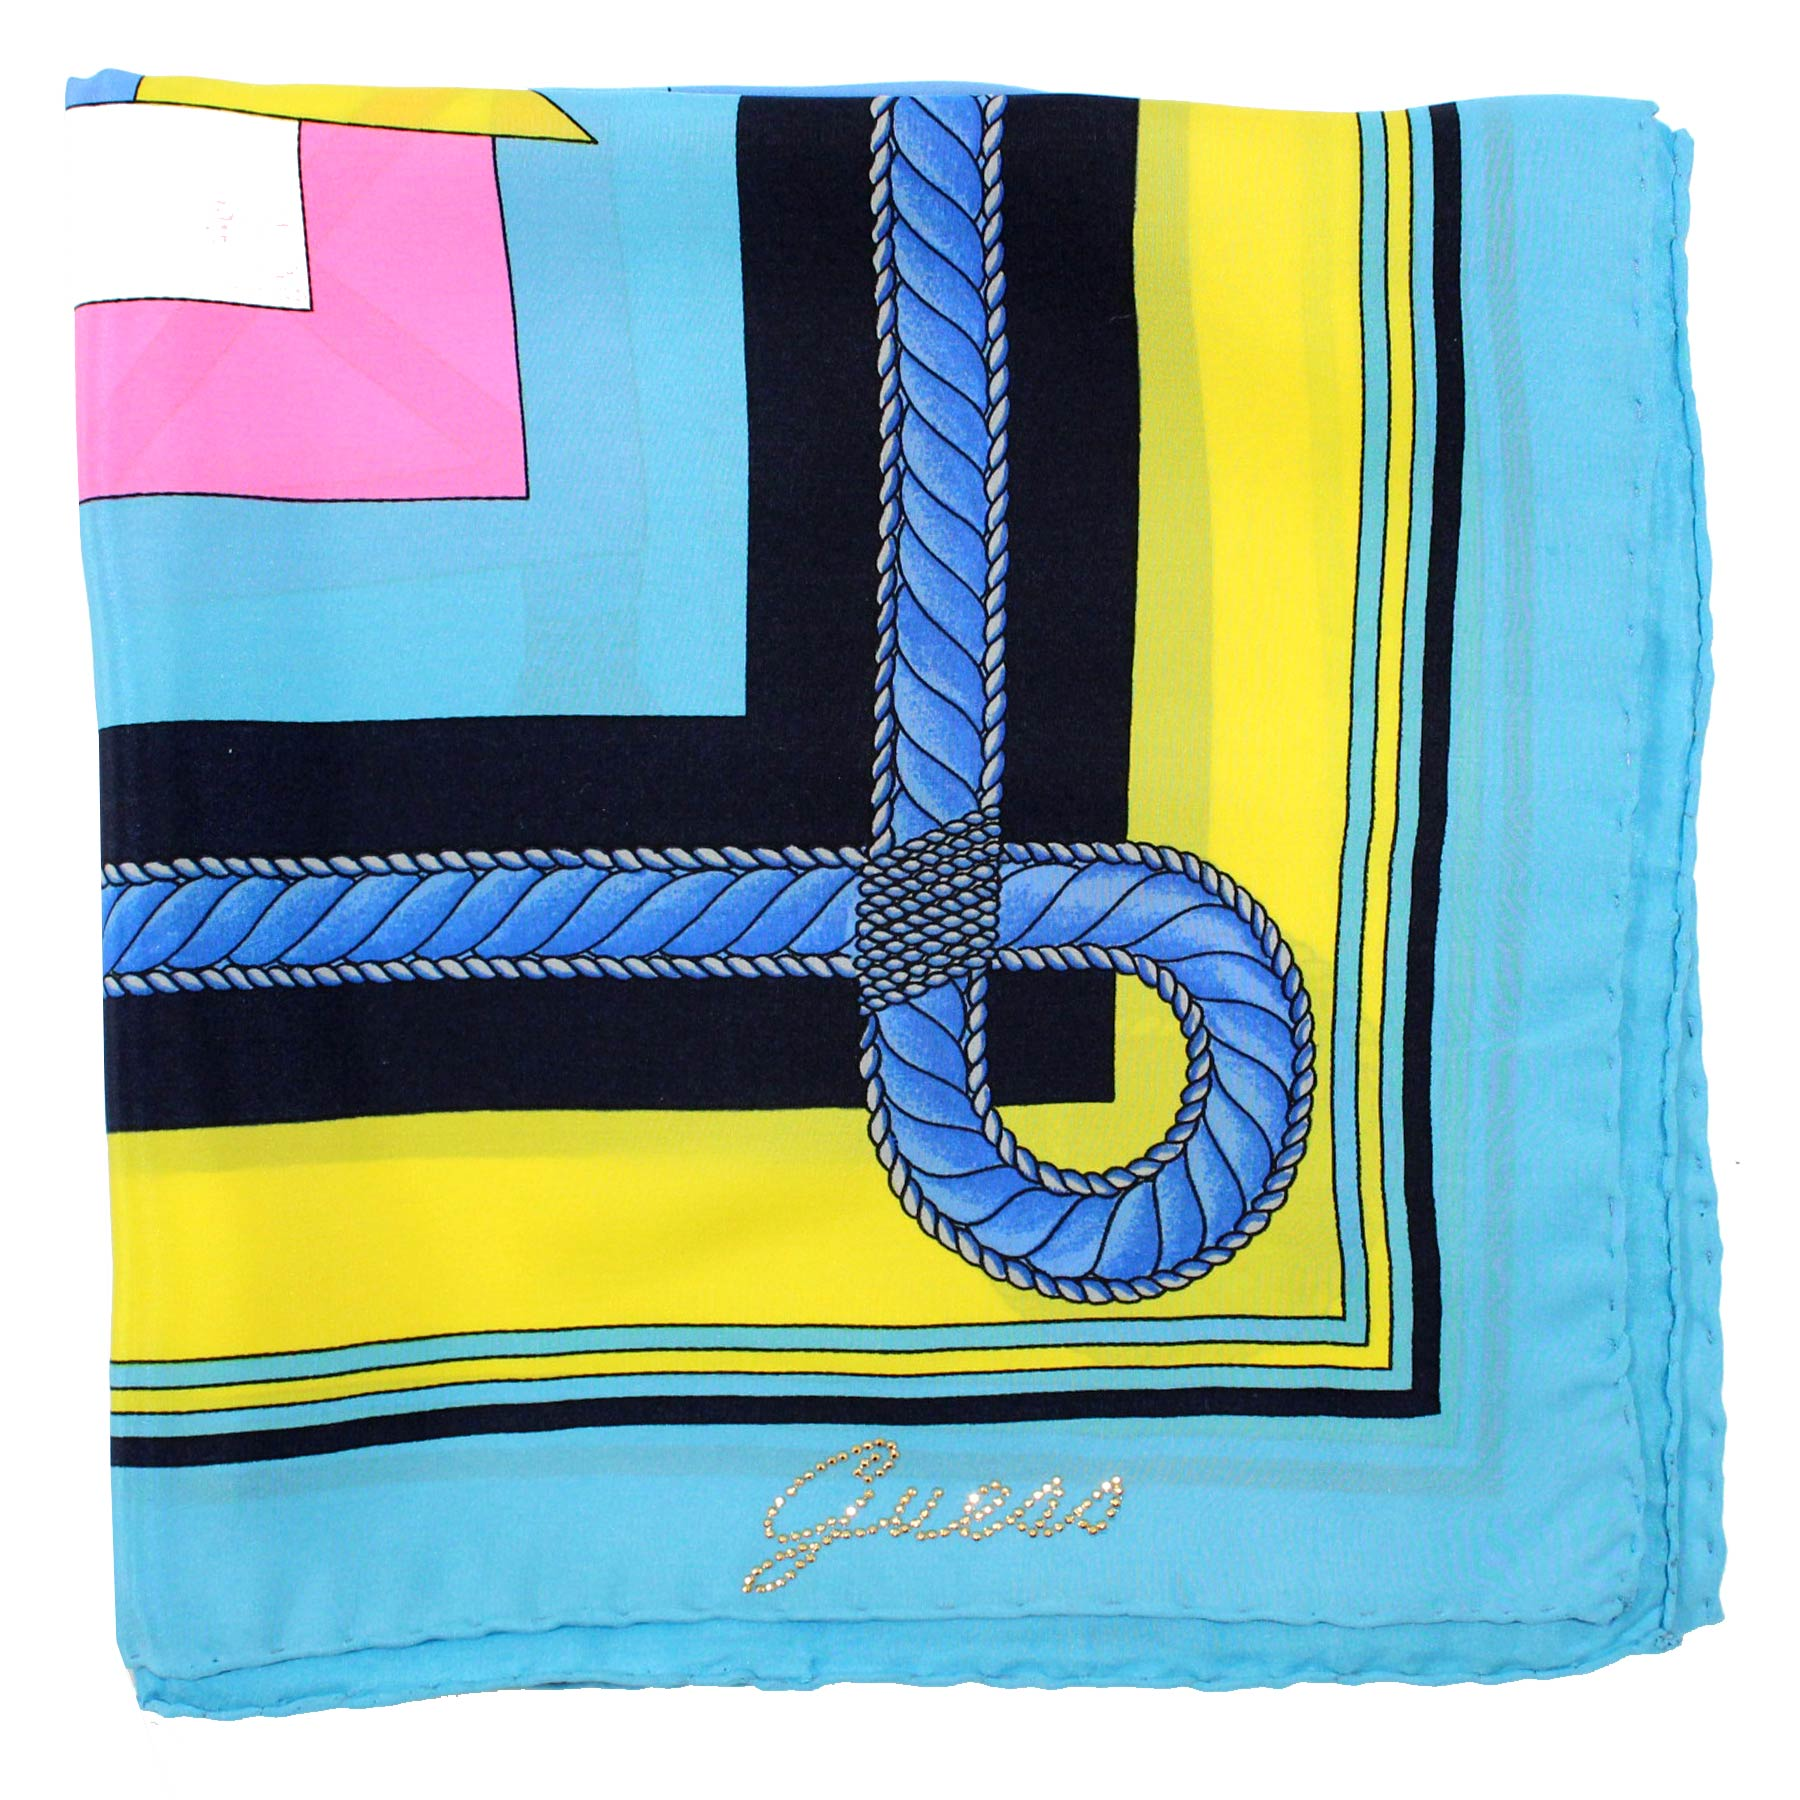 Guess Scarf Sky Blue Pink Yellow Design